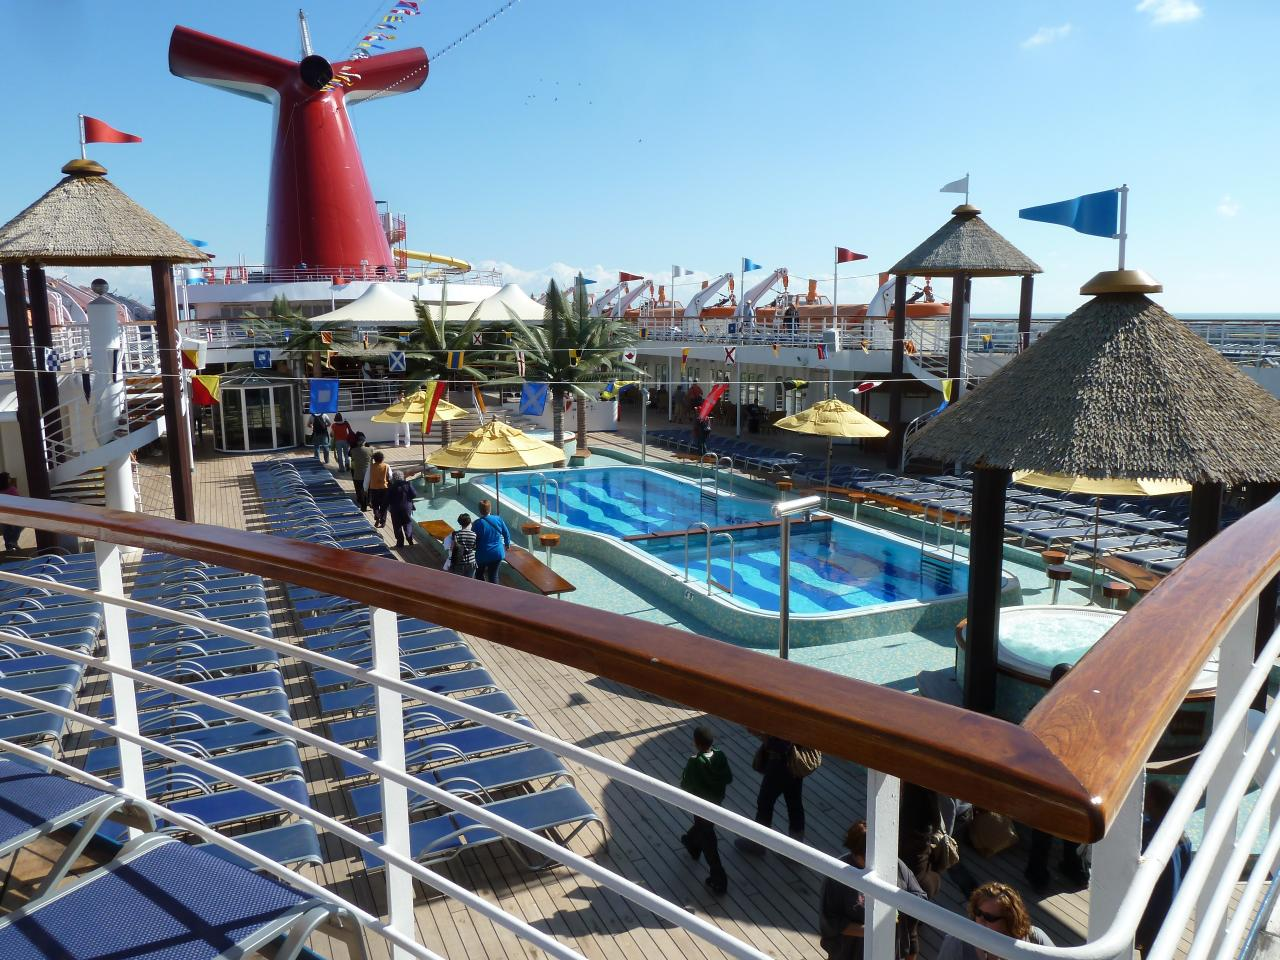 Grand Cayman Cruise Ship Excursion Information. Cruise Ship passengers arrive to Grand Cayman daily, for some passengers it is for the first time, for many it is their returning visit to our shores.